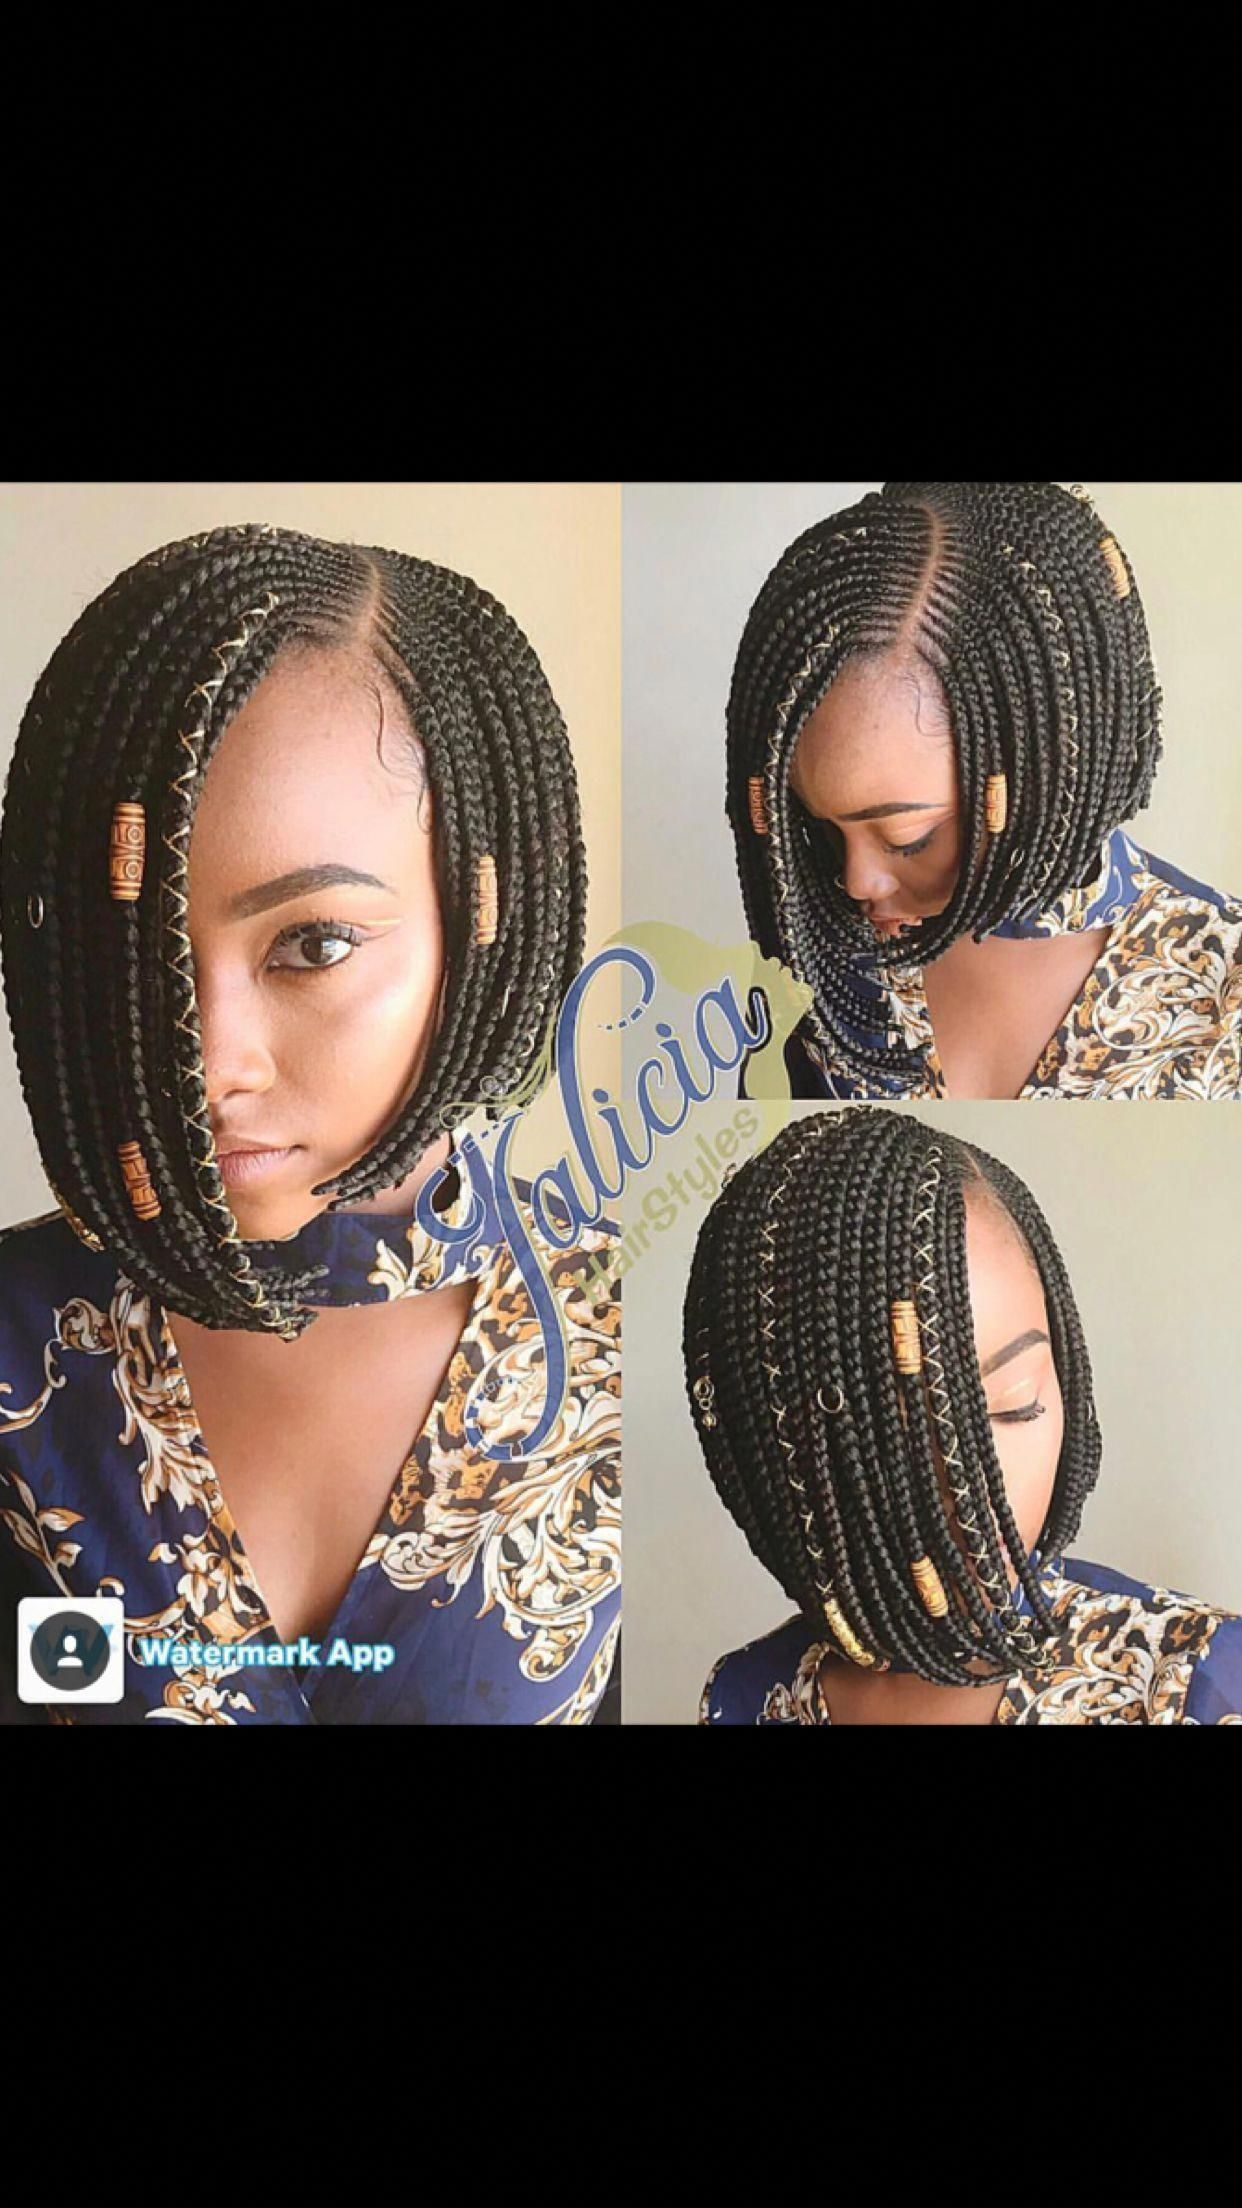 26 Ideas Carrot Braid Hairstyle Exemple 24 Populer Hairstyles Carrot Cornrows Hairstyle In 2020 African Braids Hairstyles Bob Braids Hairstyles Braided Hairstyles